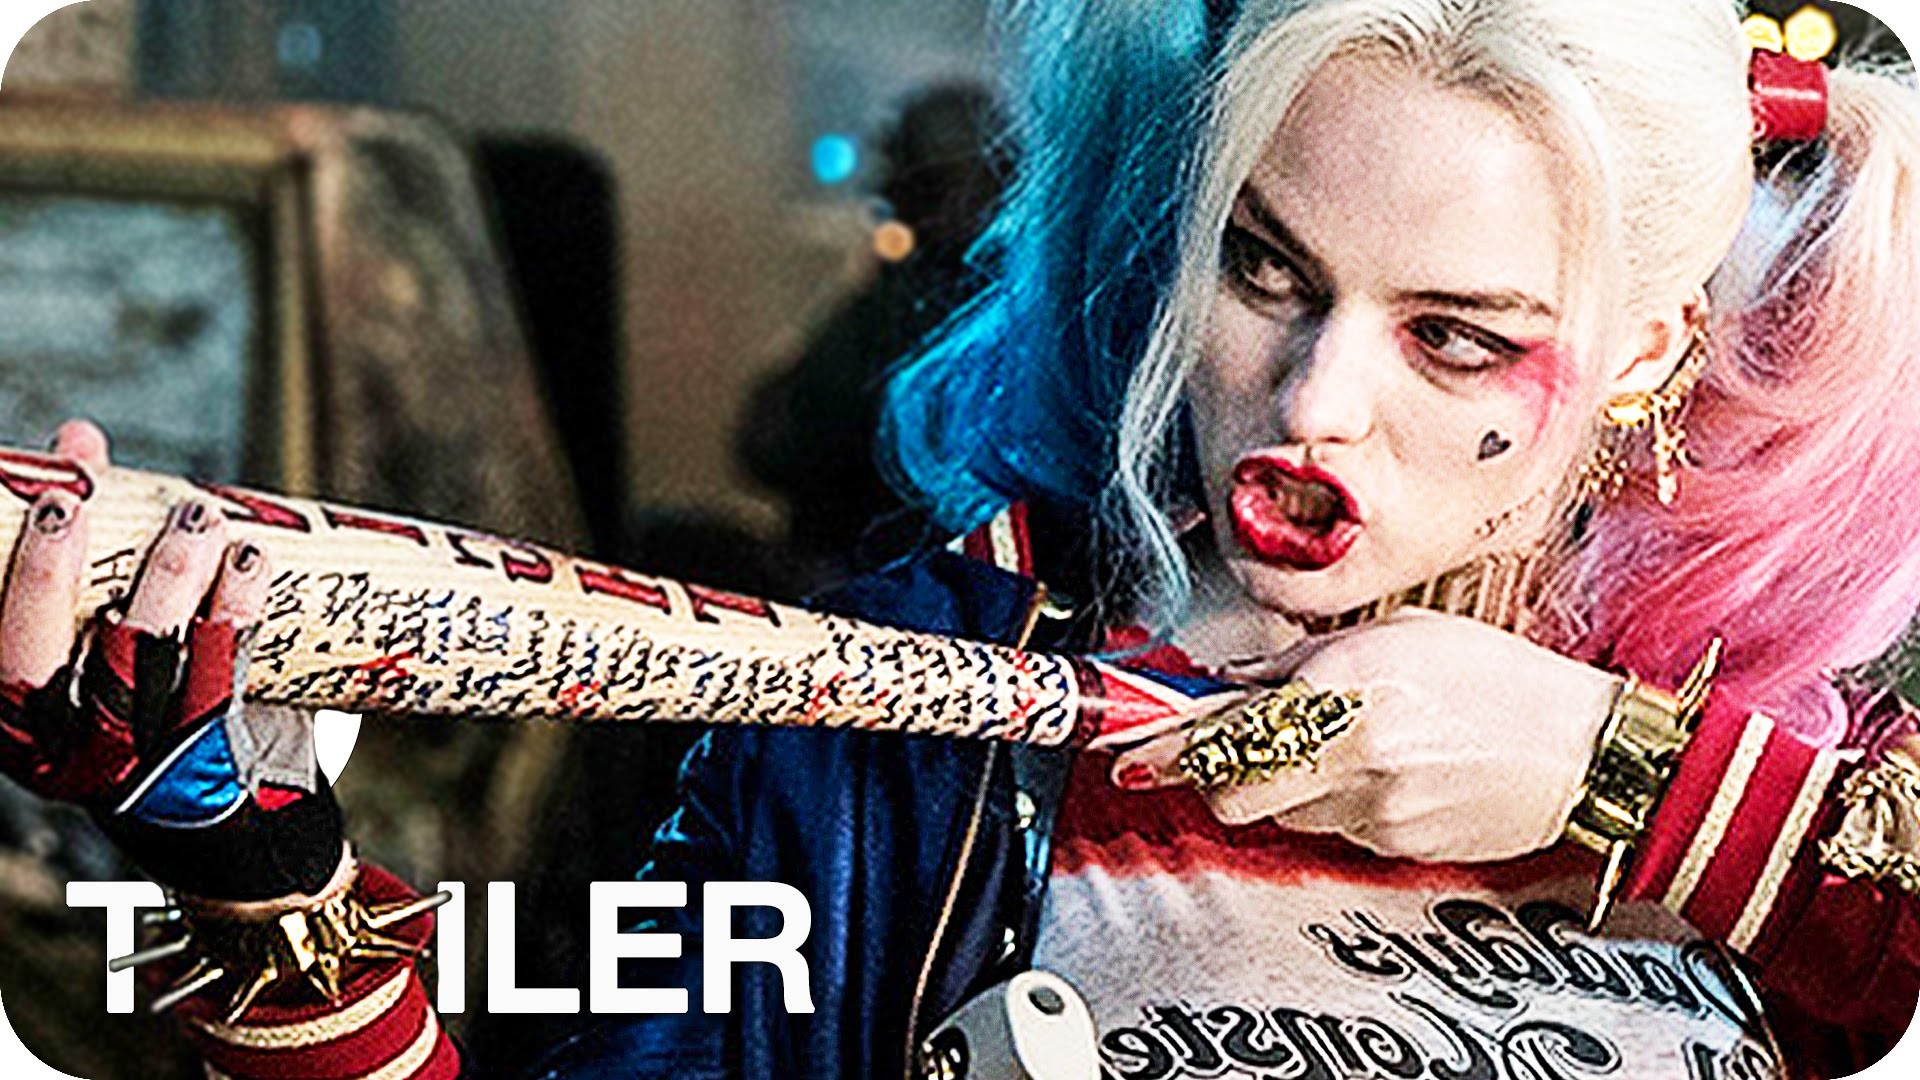 Harley Quinn Suicide Squad Wallpapers (72+ Images